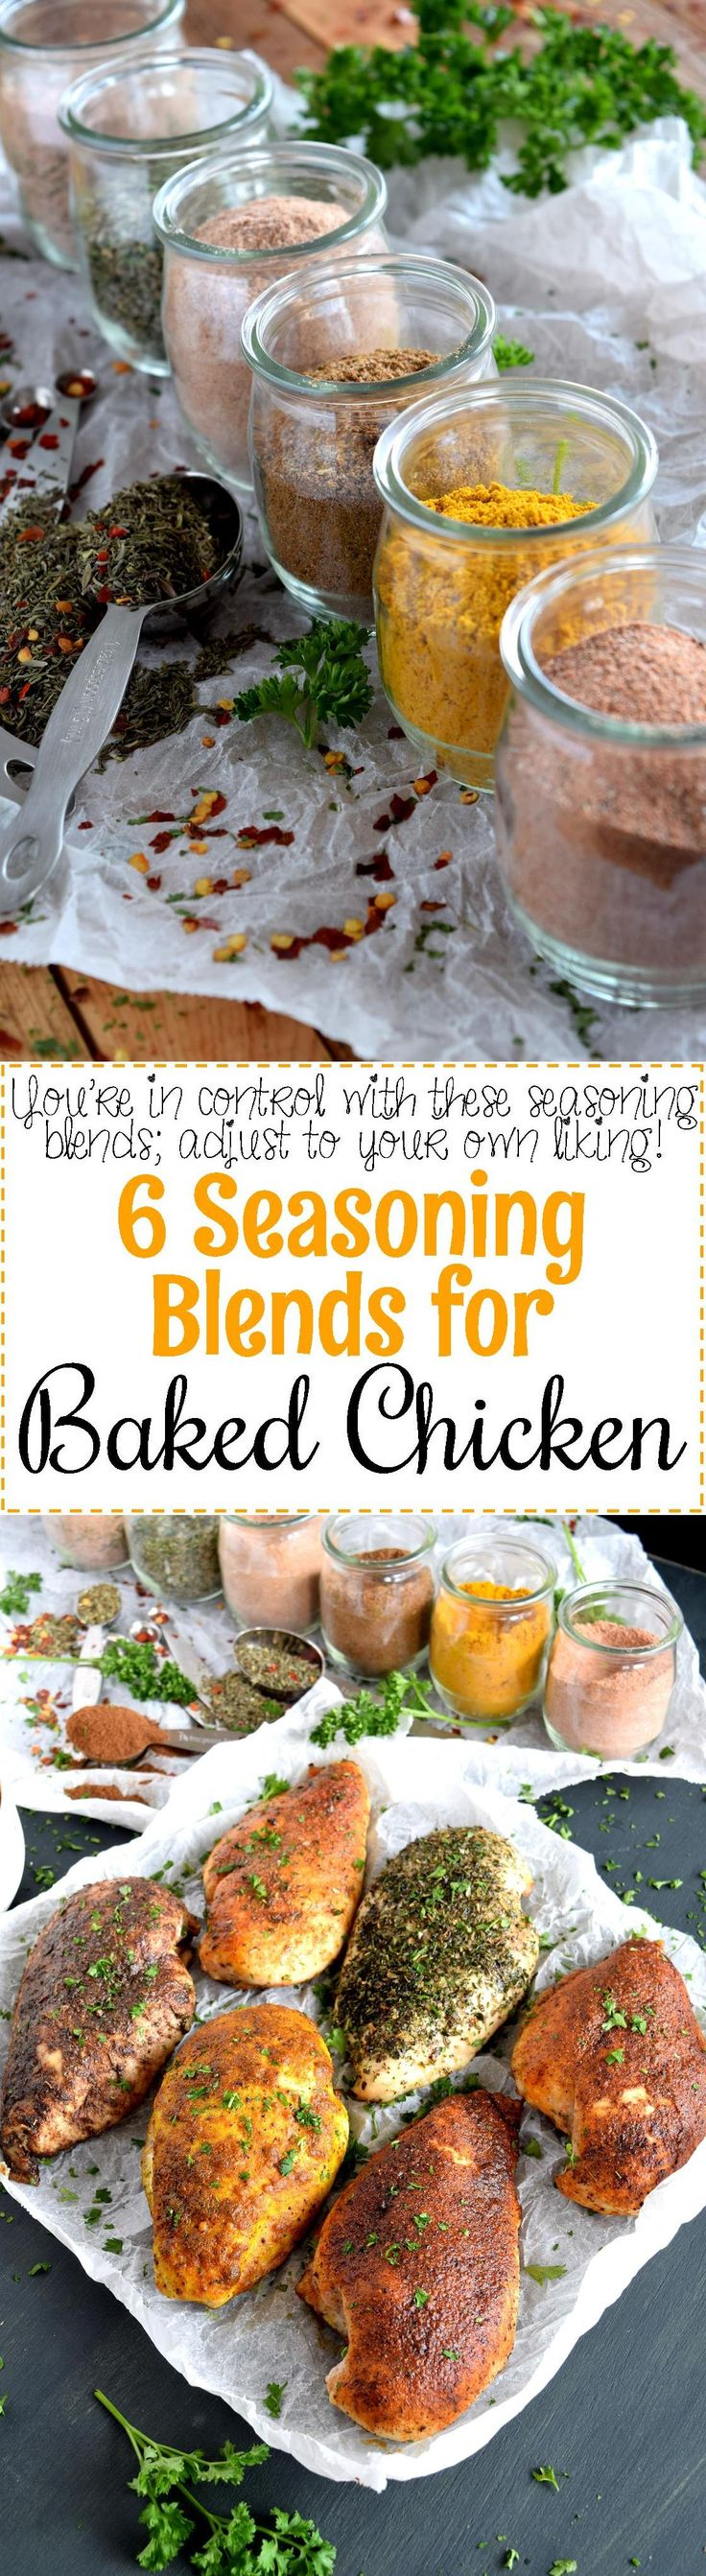 6 Seasoning Blends for Baked Chicken - Plain baked chicken is a thing of the past!  Jazz up your baked or grilled chicken with these 6 Seasoning Blends!  Pick your favourite – Cajun, Italian, Southwest, Jerk, Curry, or BBQ!